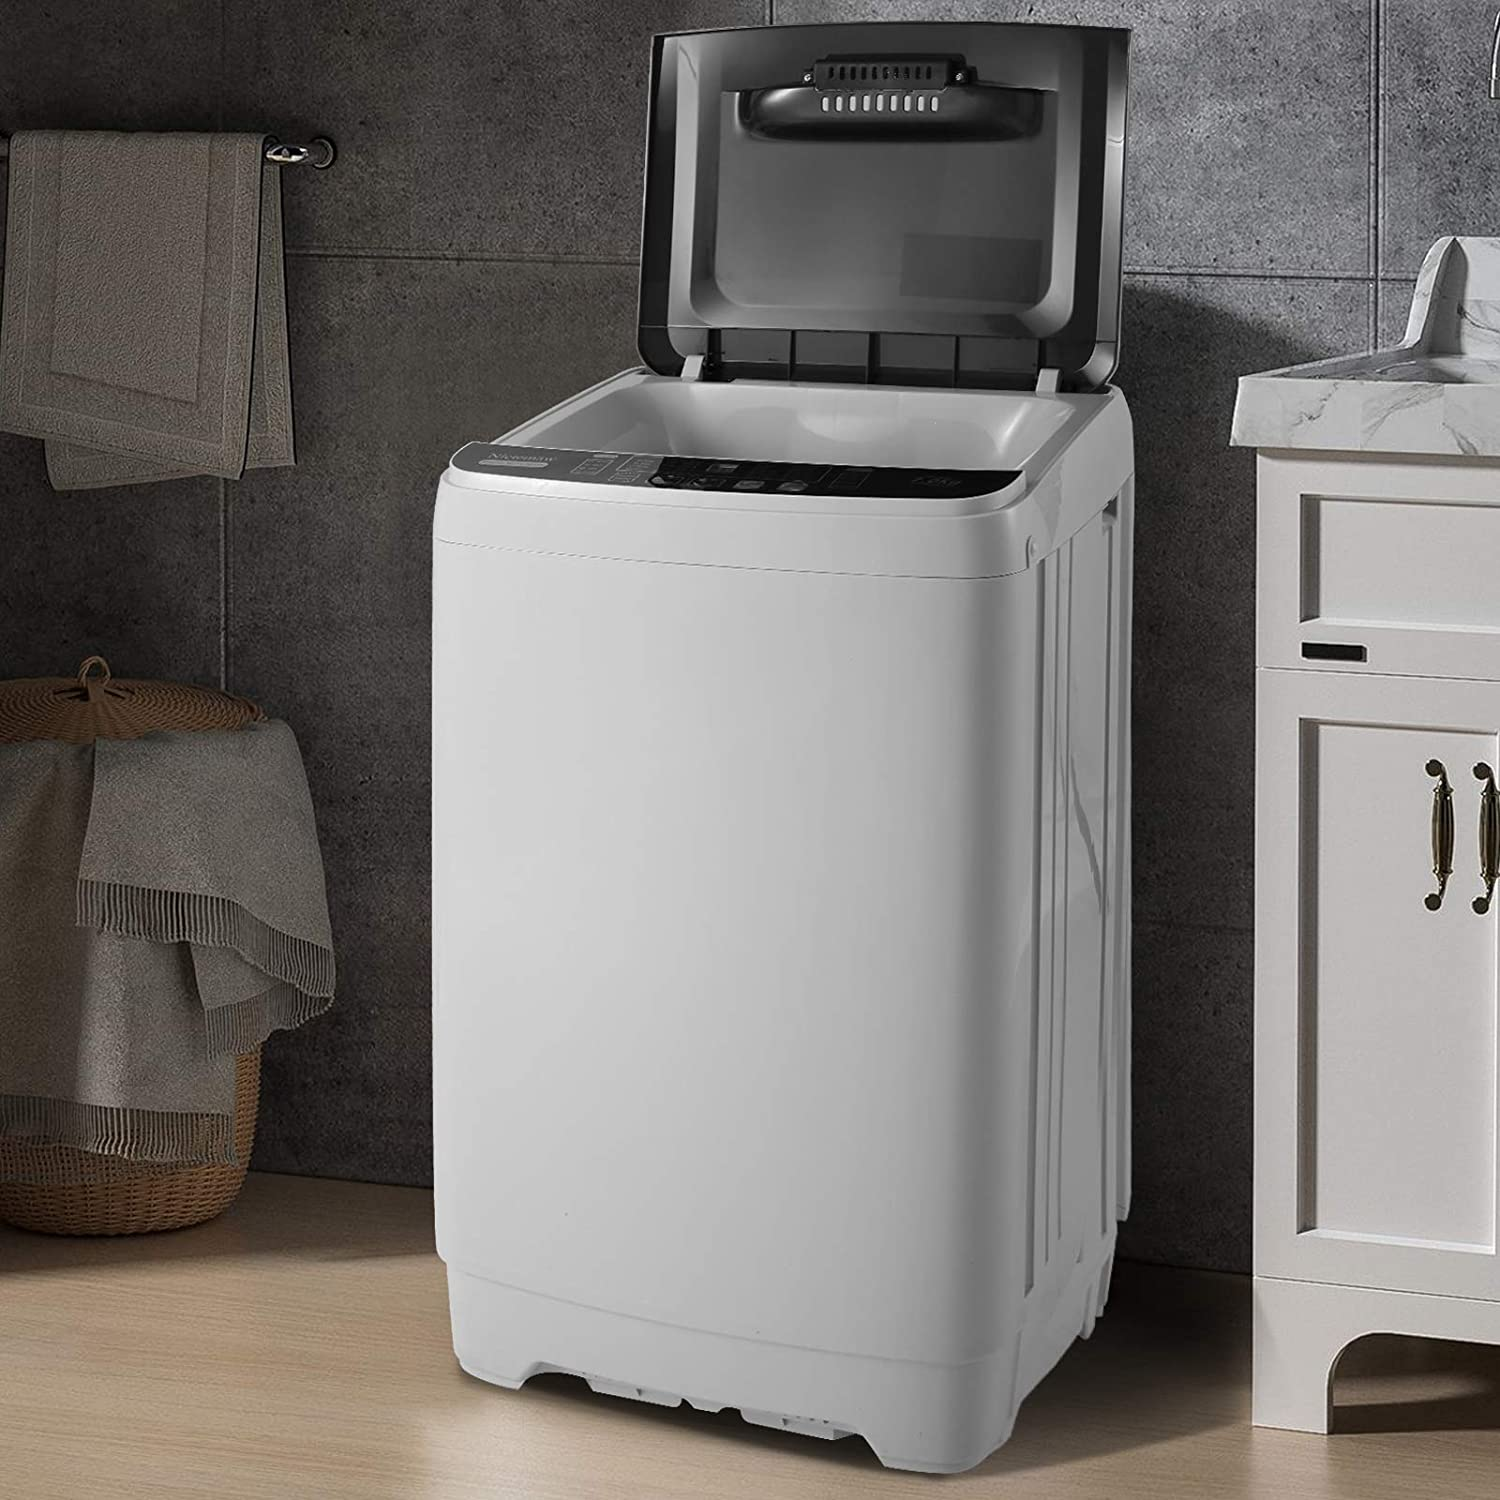 Appliances 13.5Lbs Capacity Full-Automatic Portable Washer with 10 ...